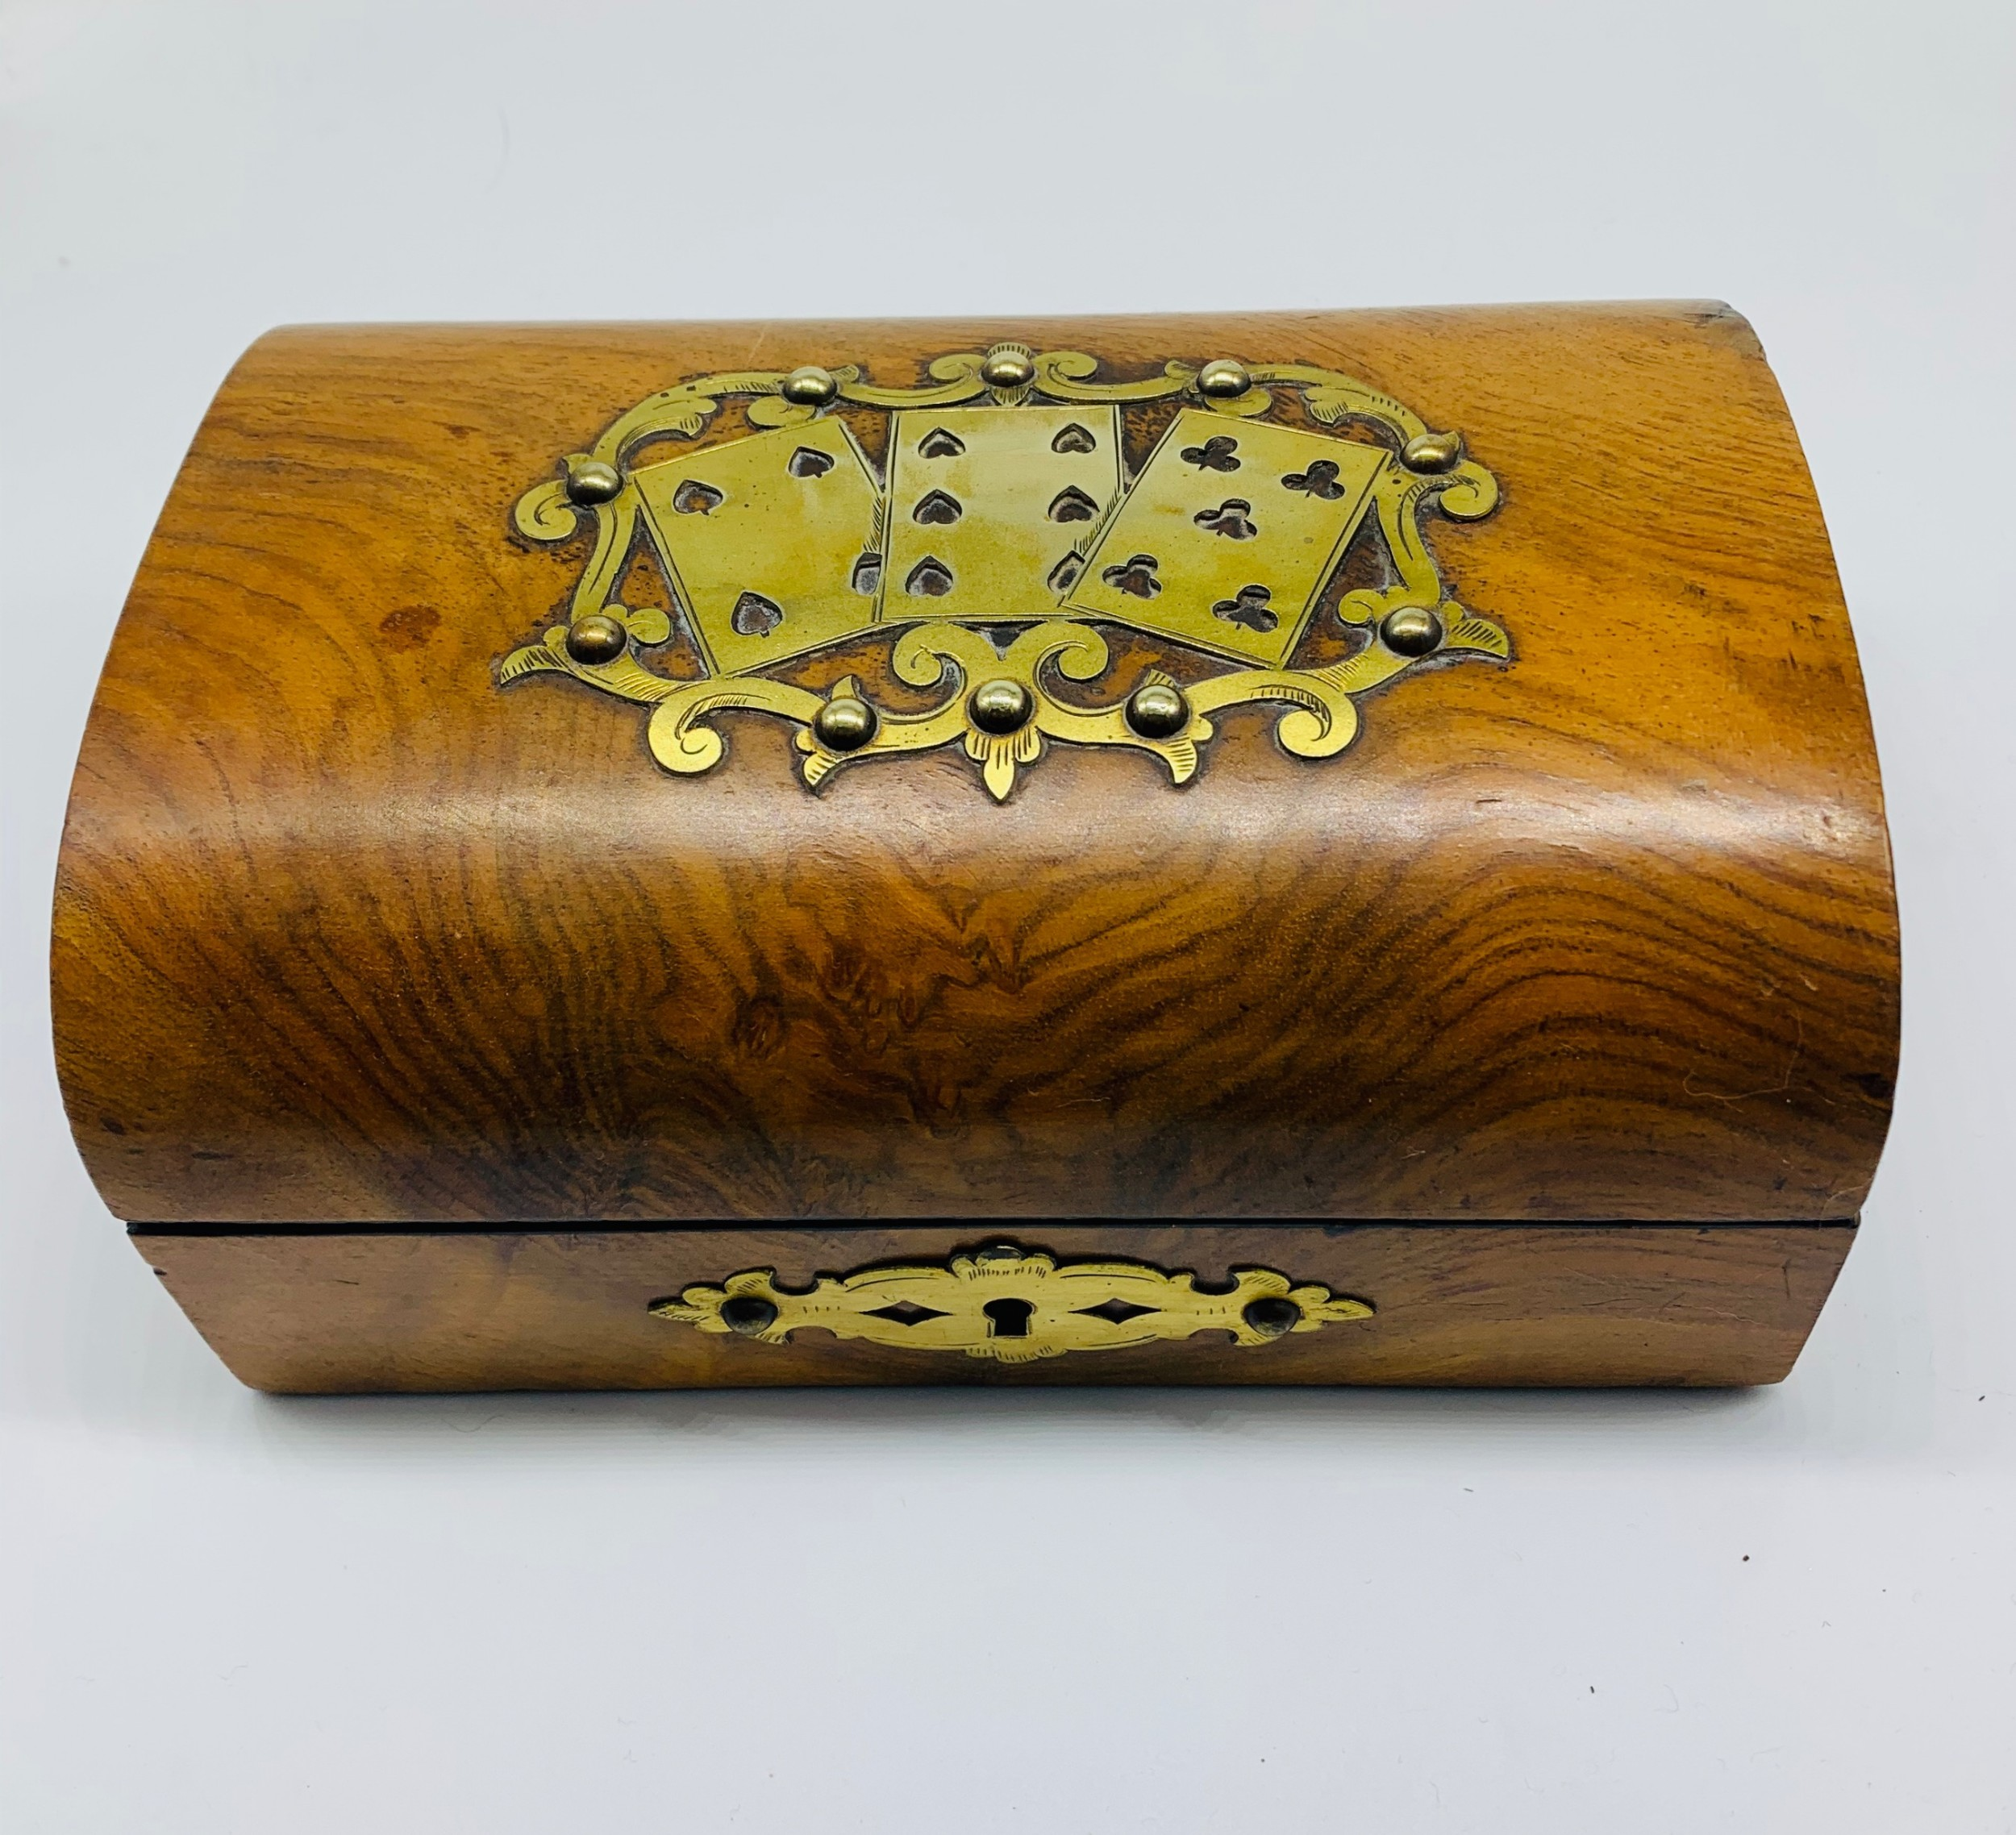 mid 19th century walnut and brass playing card games box c1860 includes cards and games